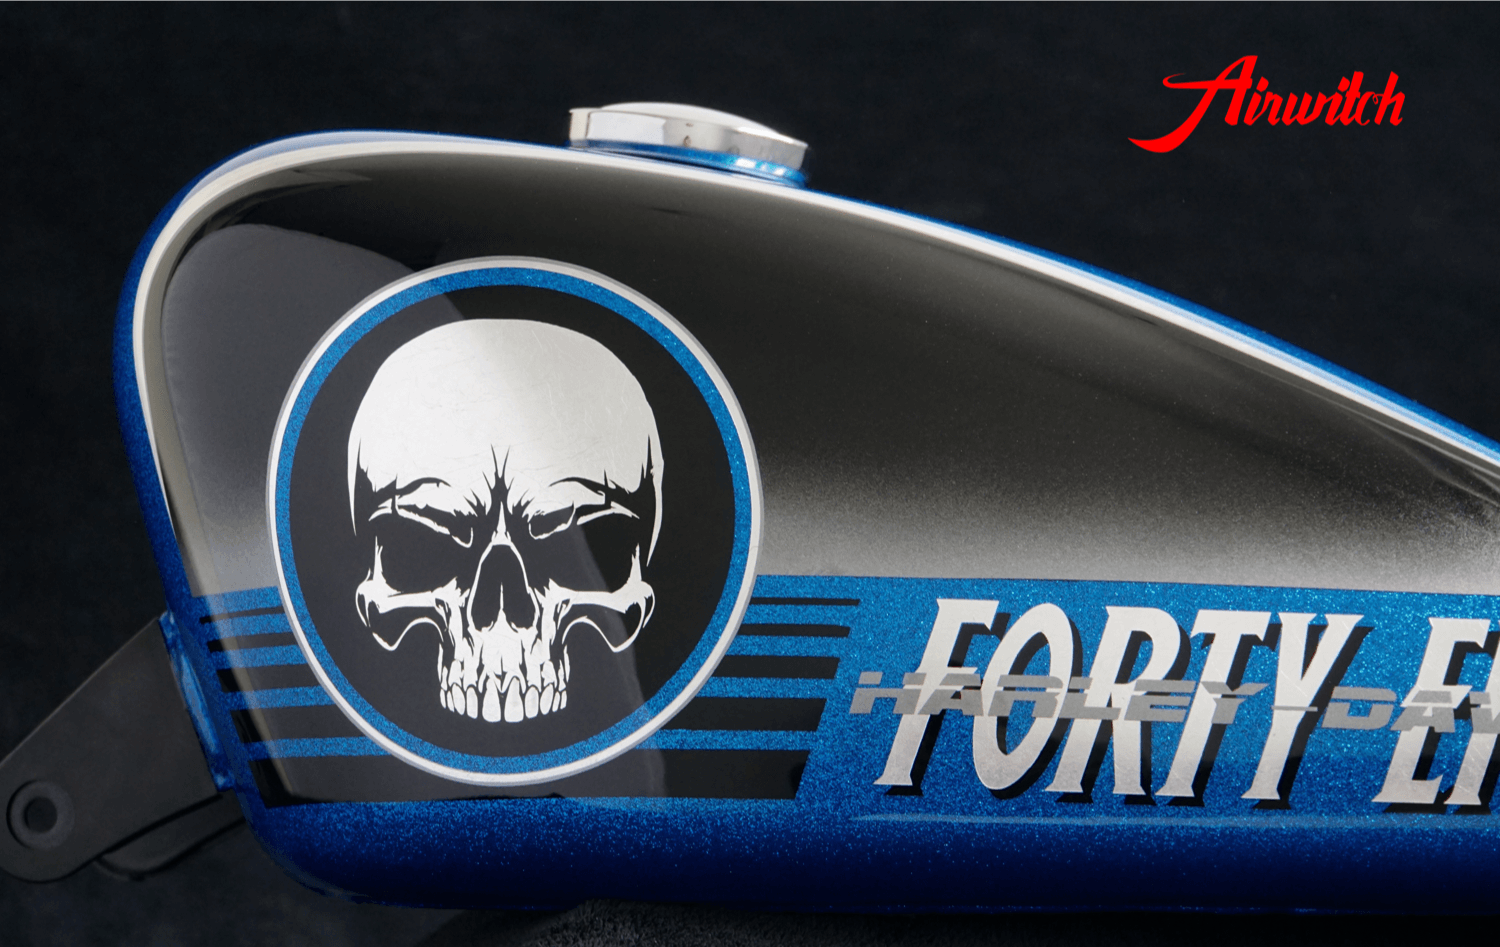 Custom Paint Harley Davidson Forty Eight 48 blue metalflakes & airbrush skull, black, silver leaf